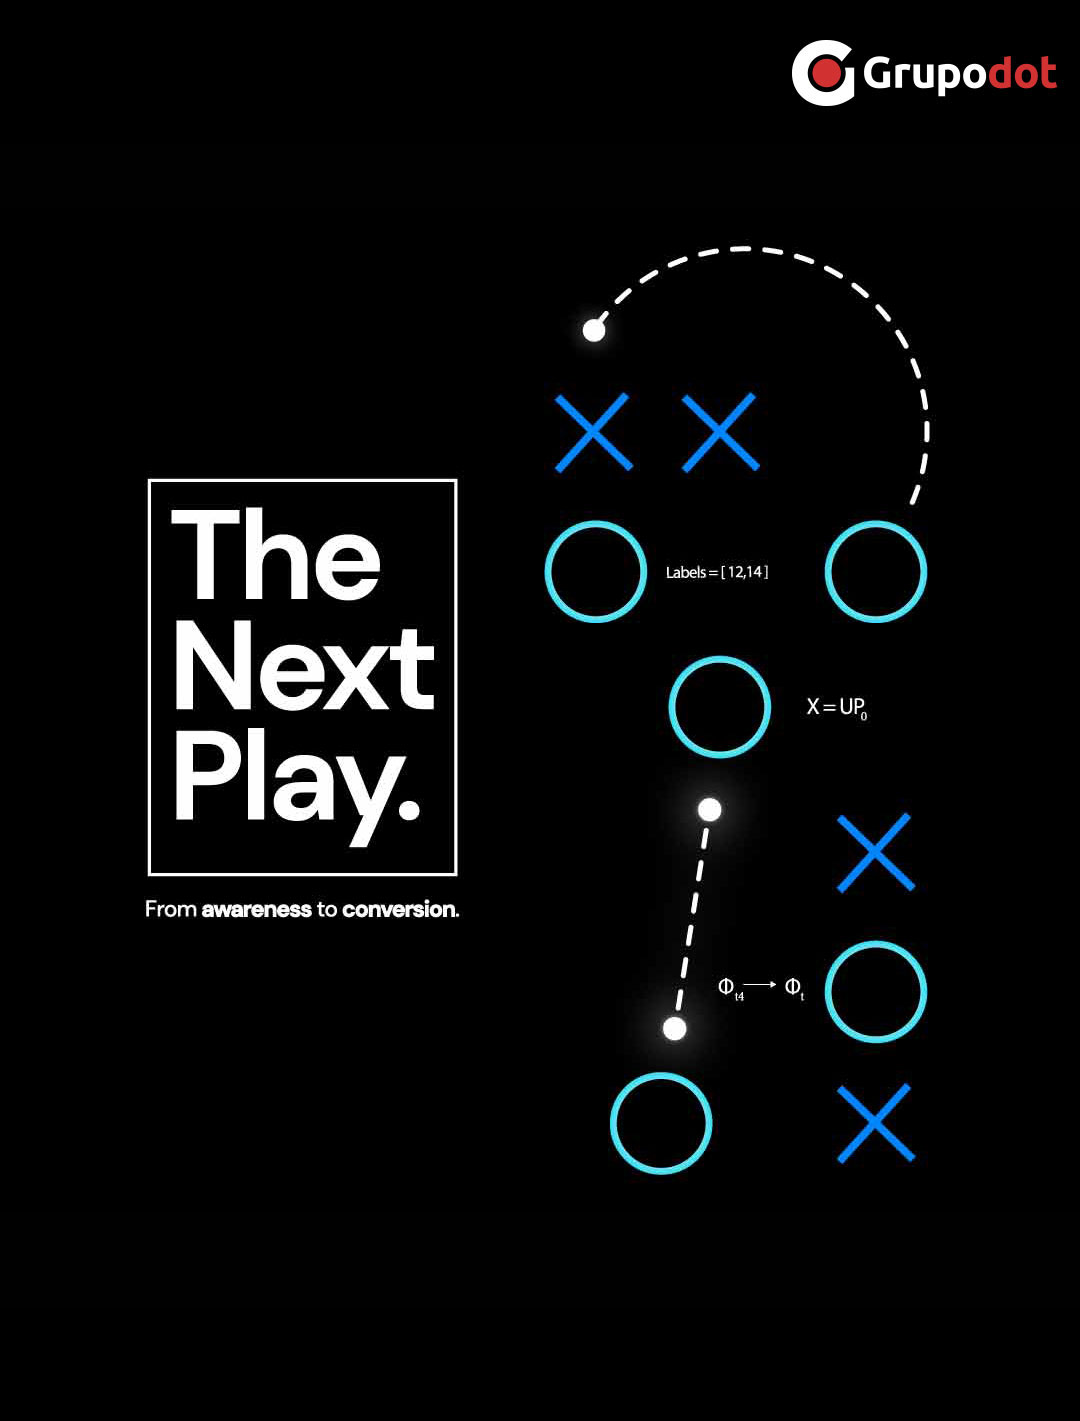 The Next Play